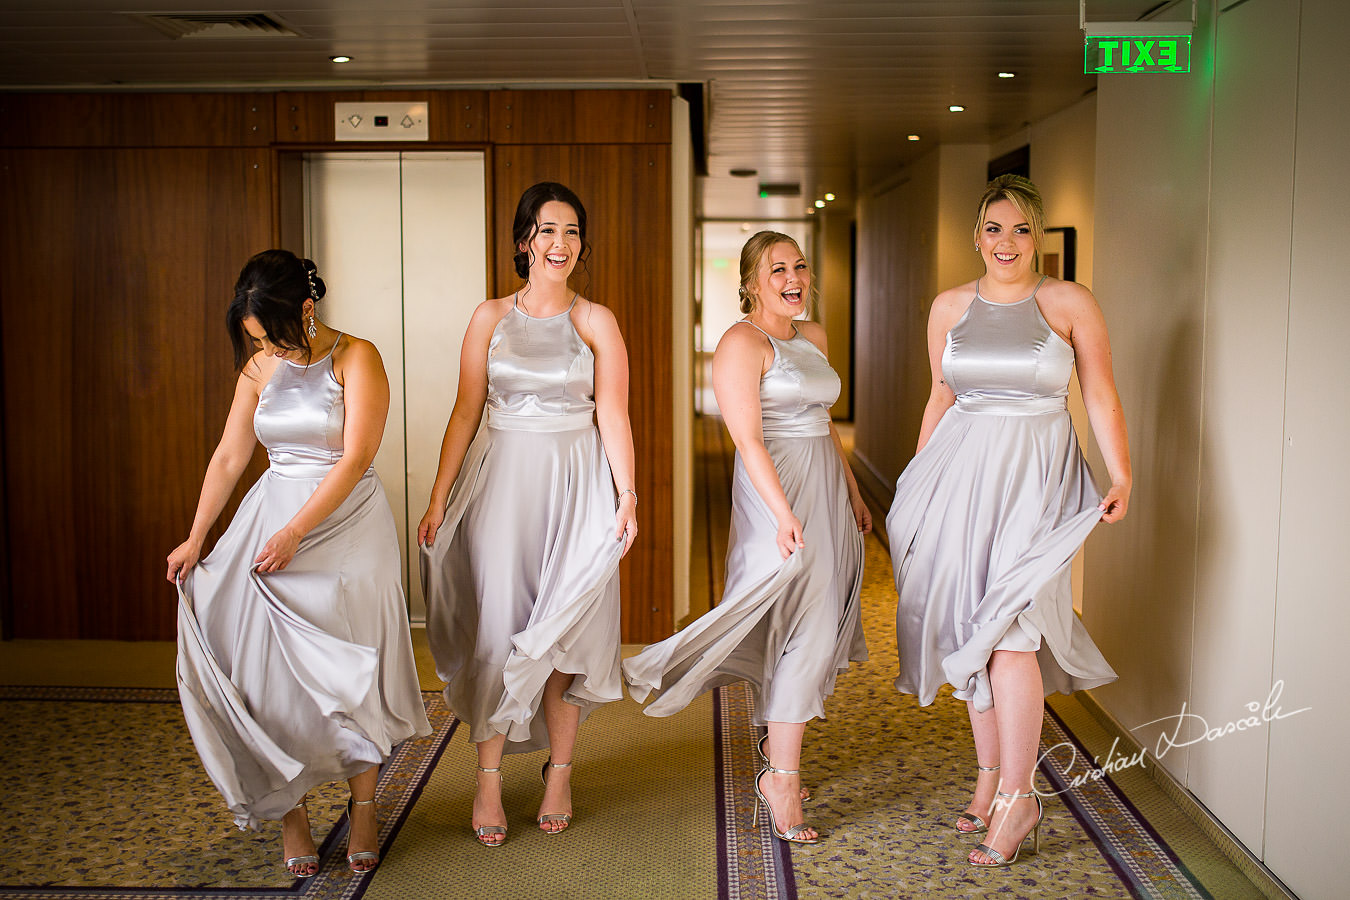 The Bridesmaids having fun during a Beautiful Wedding at Elias Beach Hotel captured by Cyprus Photographer Cristian Dascalu.